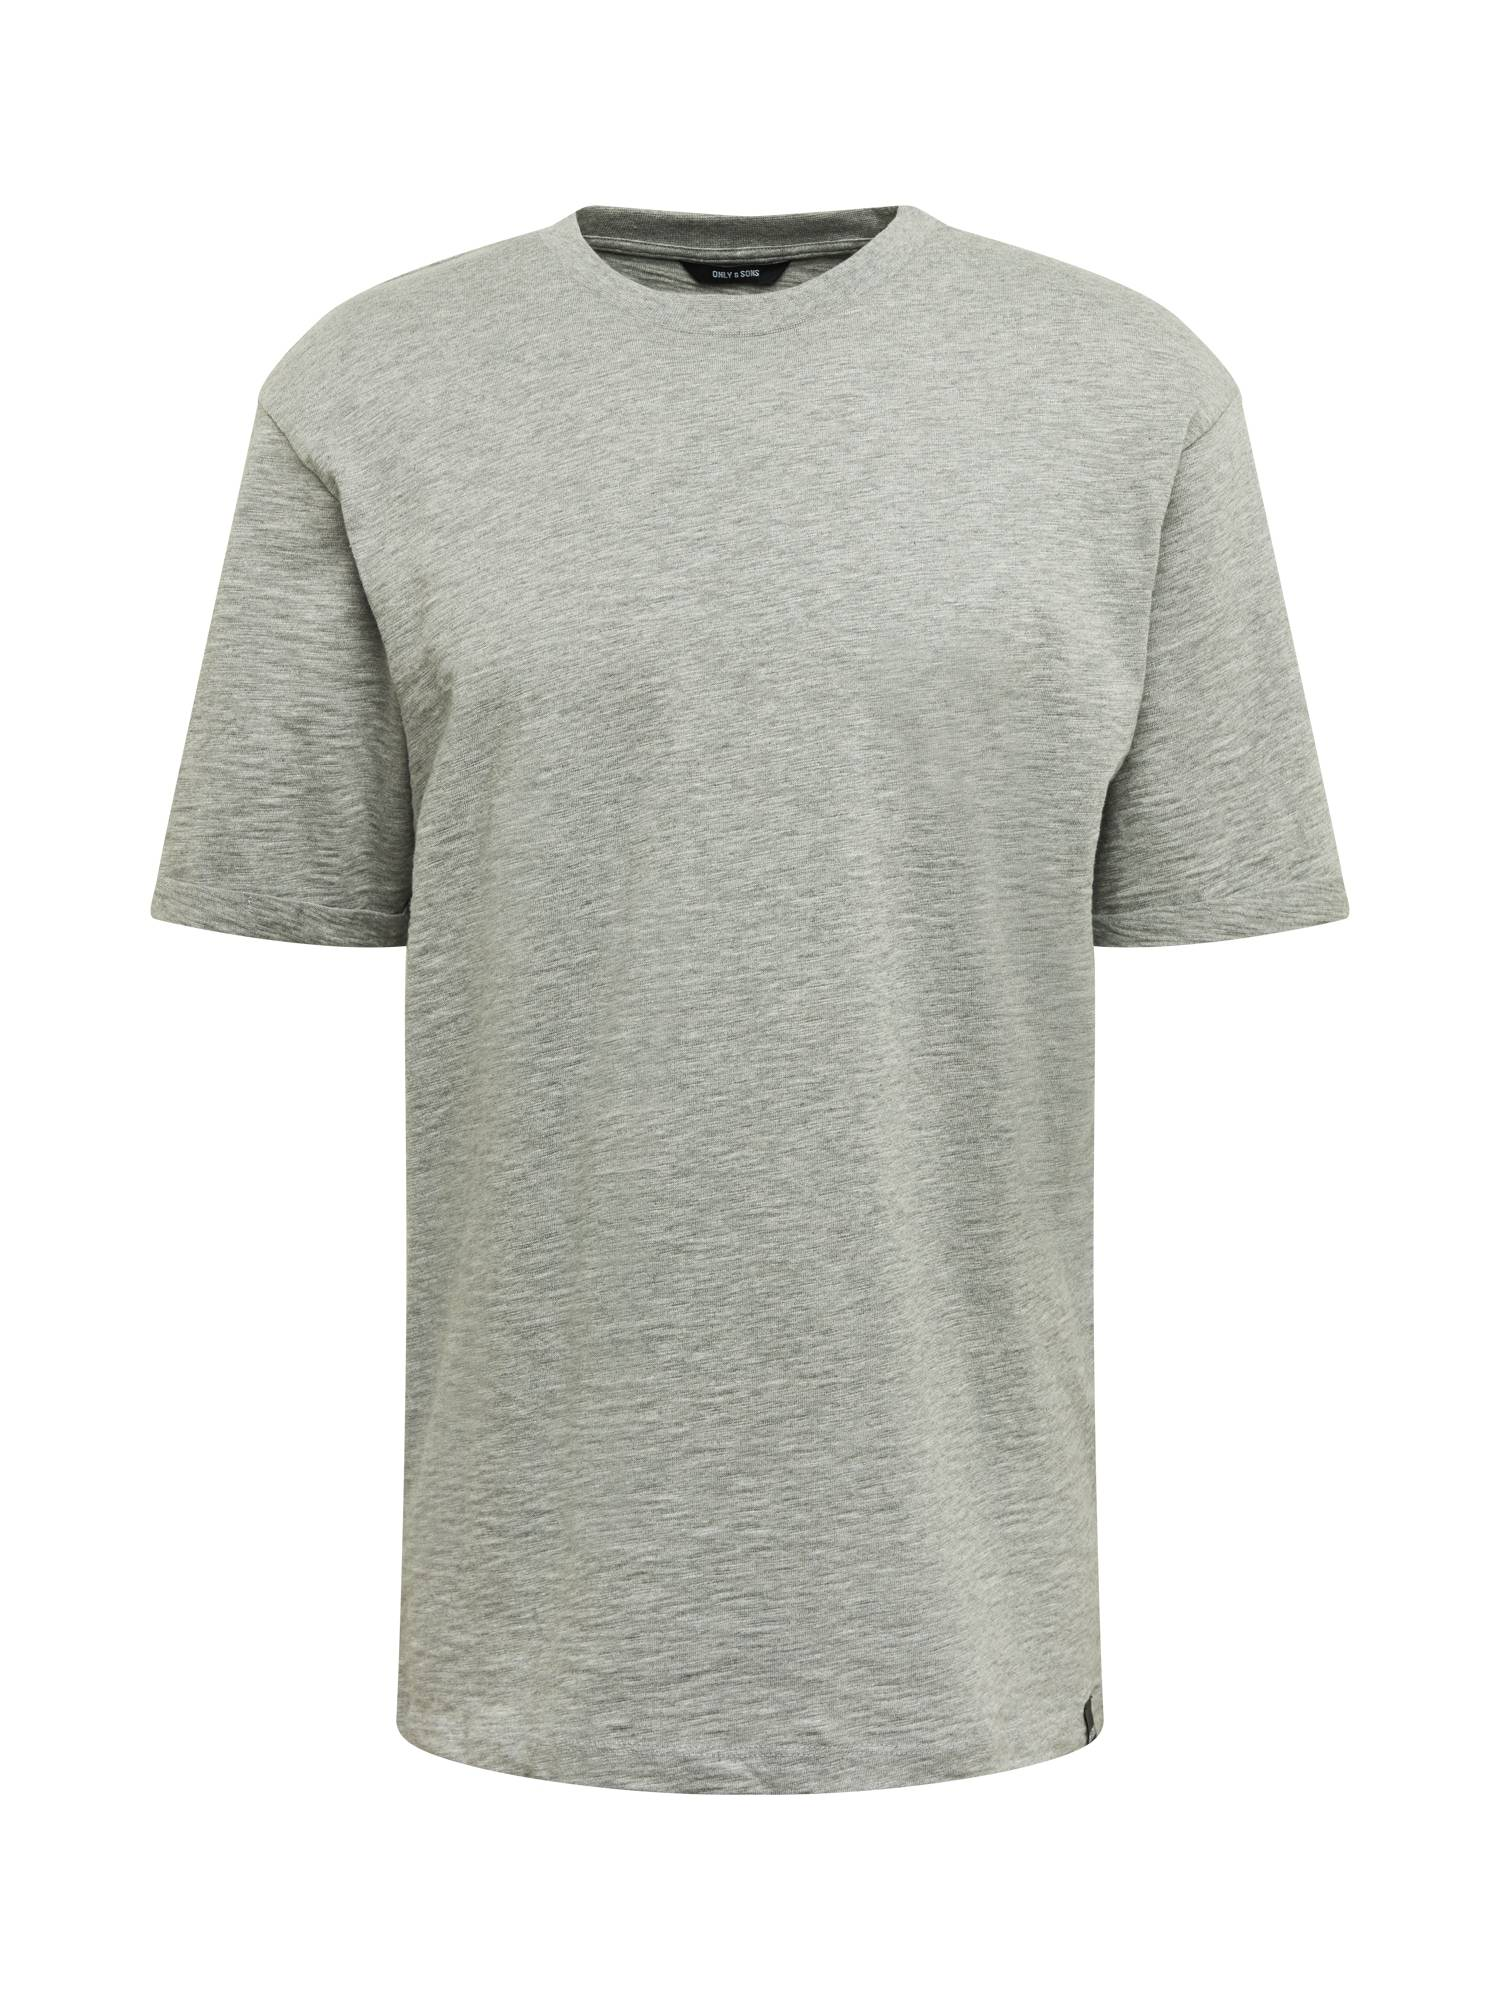 Only & Sons T-Shirt 'DANTE'  - Gris - Taille: XS - male